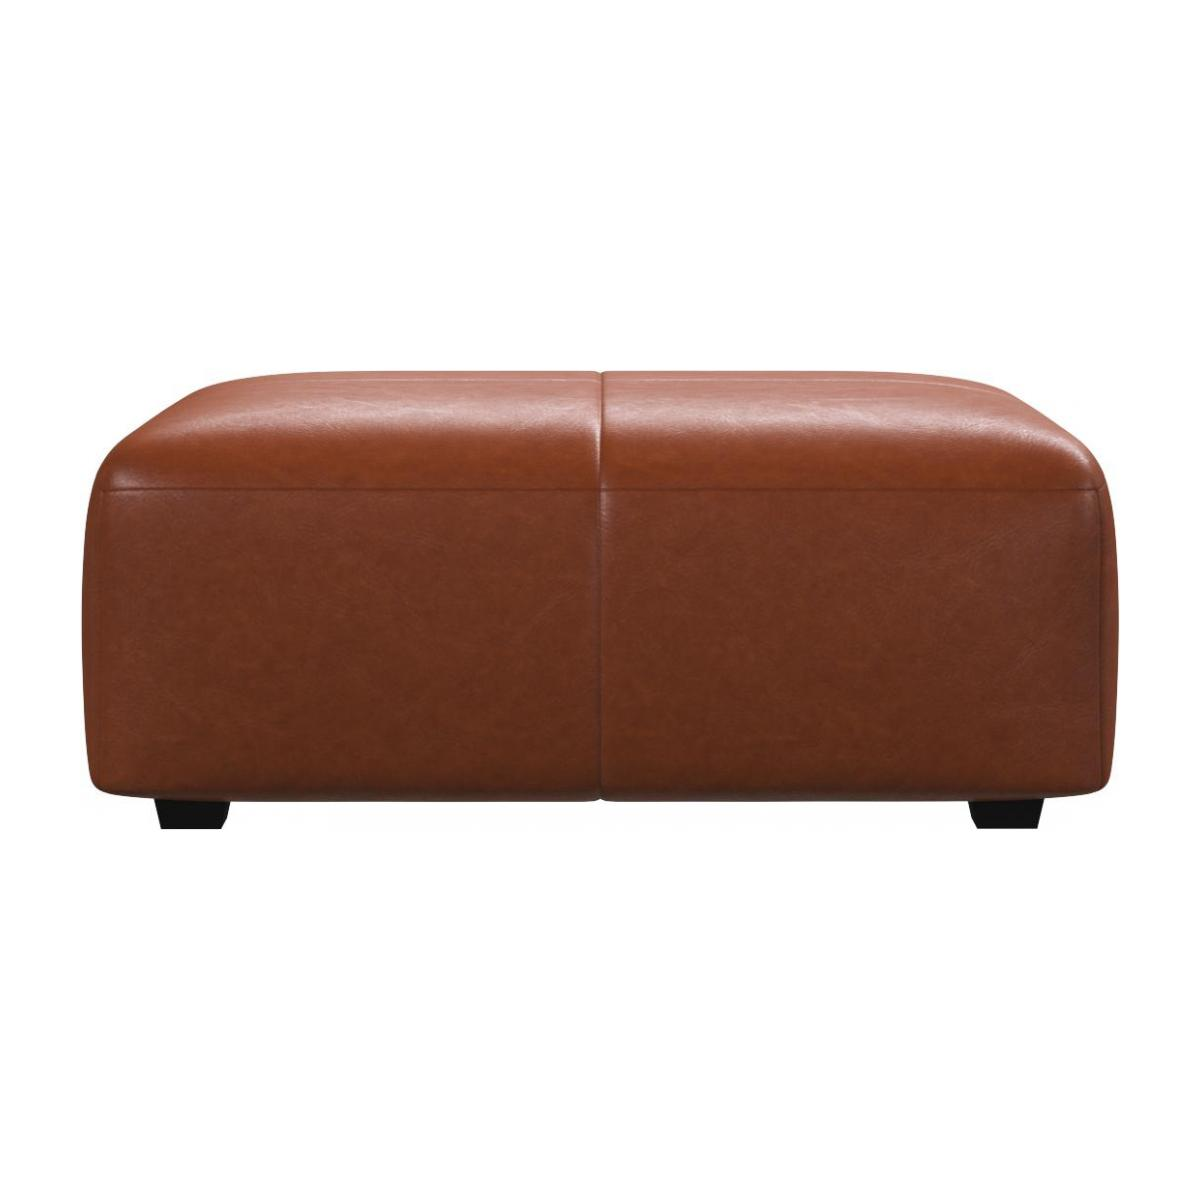 Footstool in Vintage aniline leather, old chestnut n°2